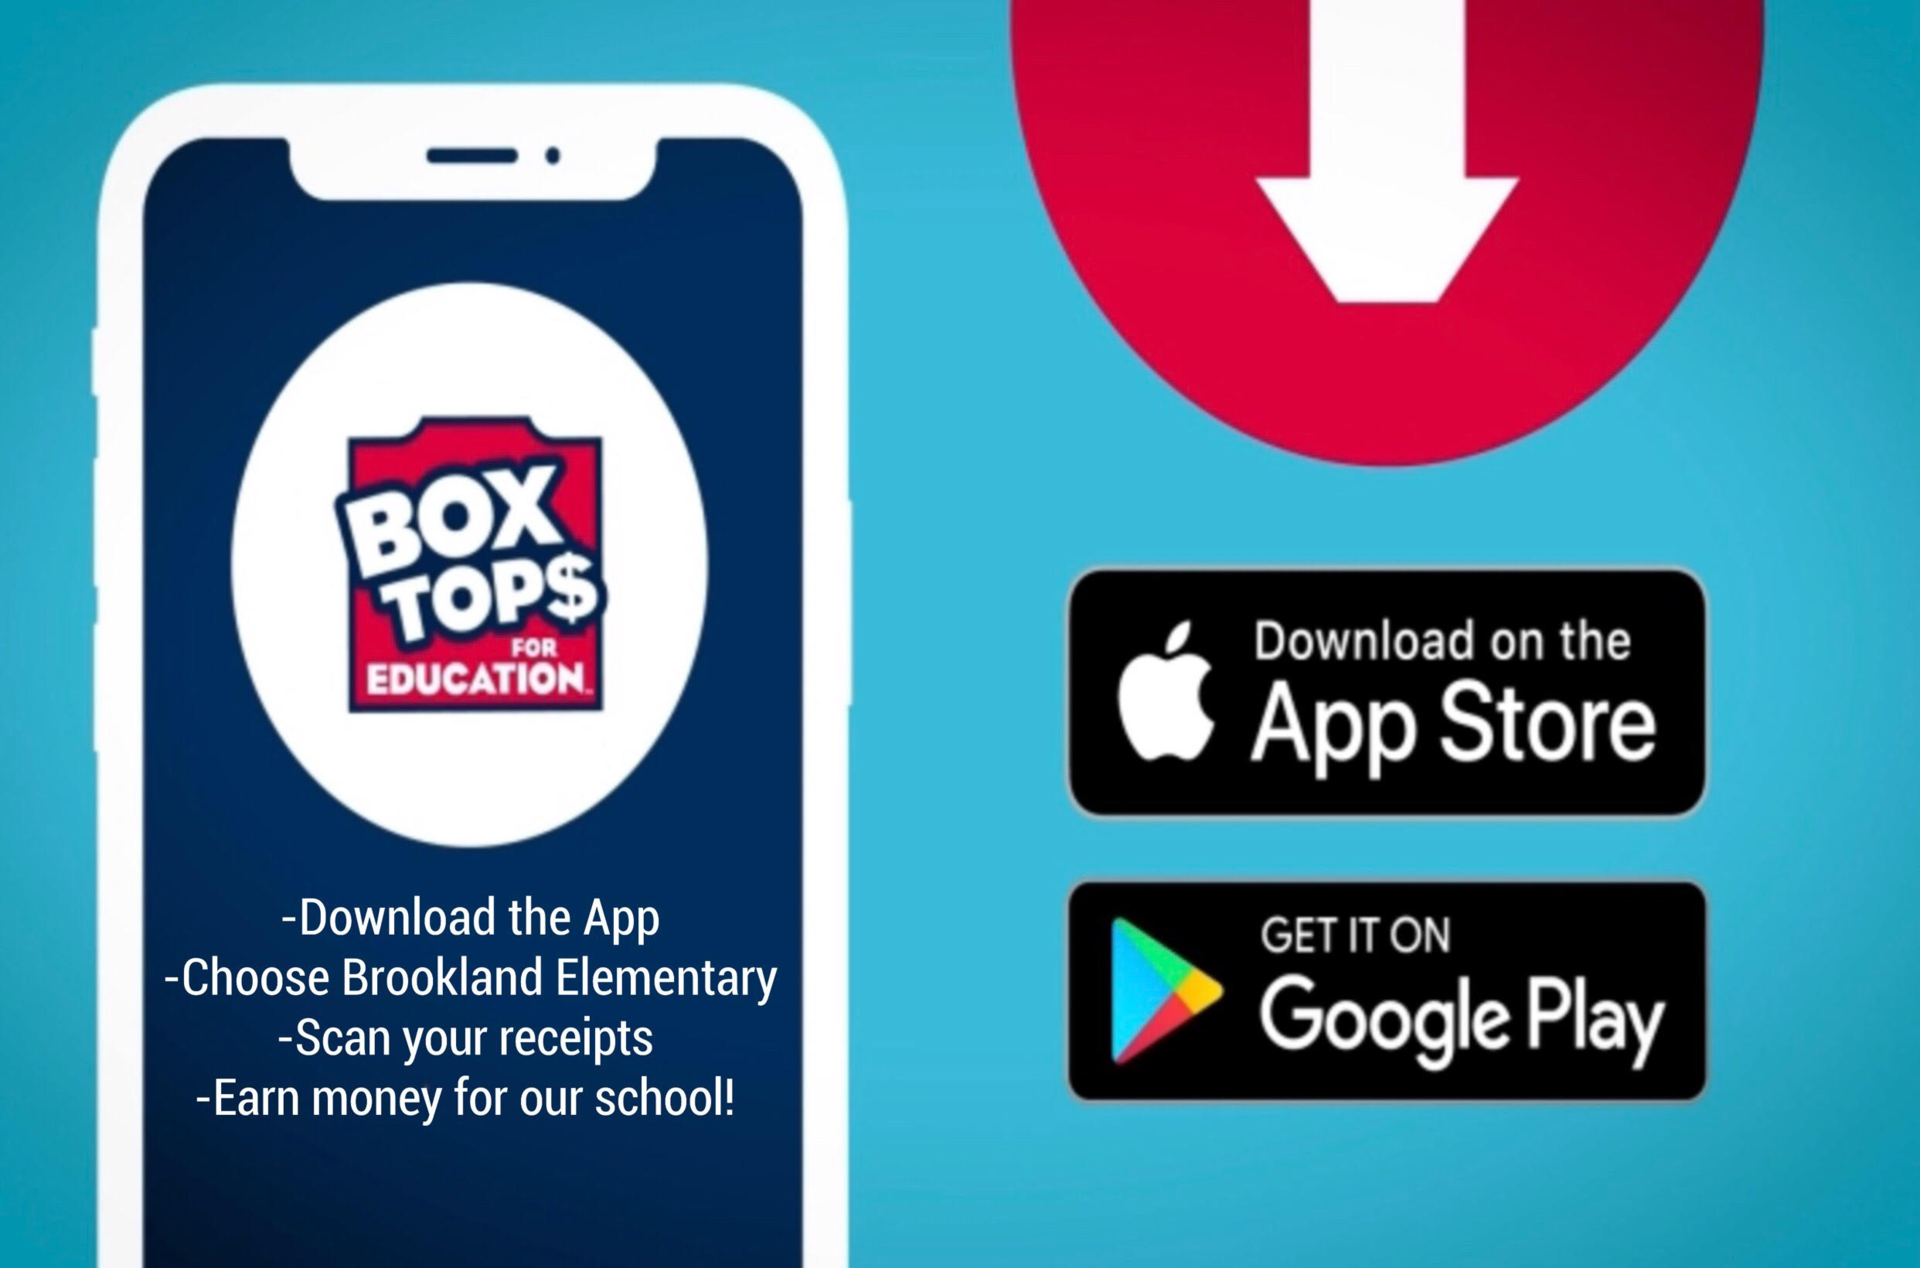 Use the Box To mobile app to raise money for our school!